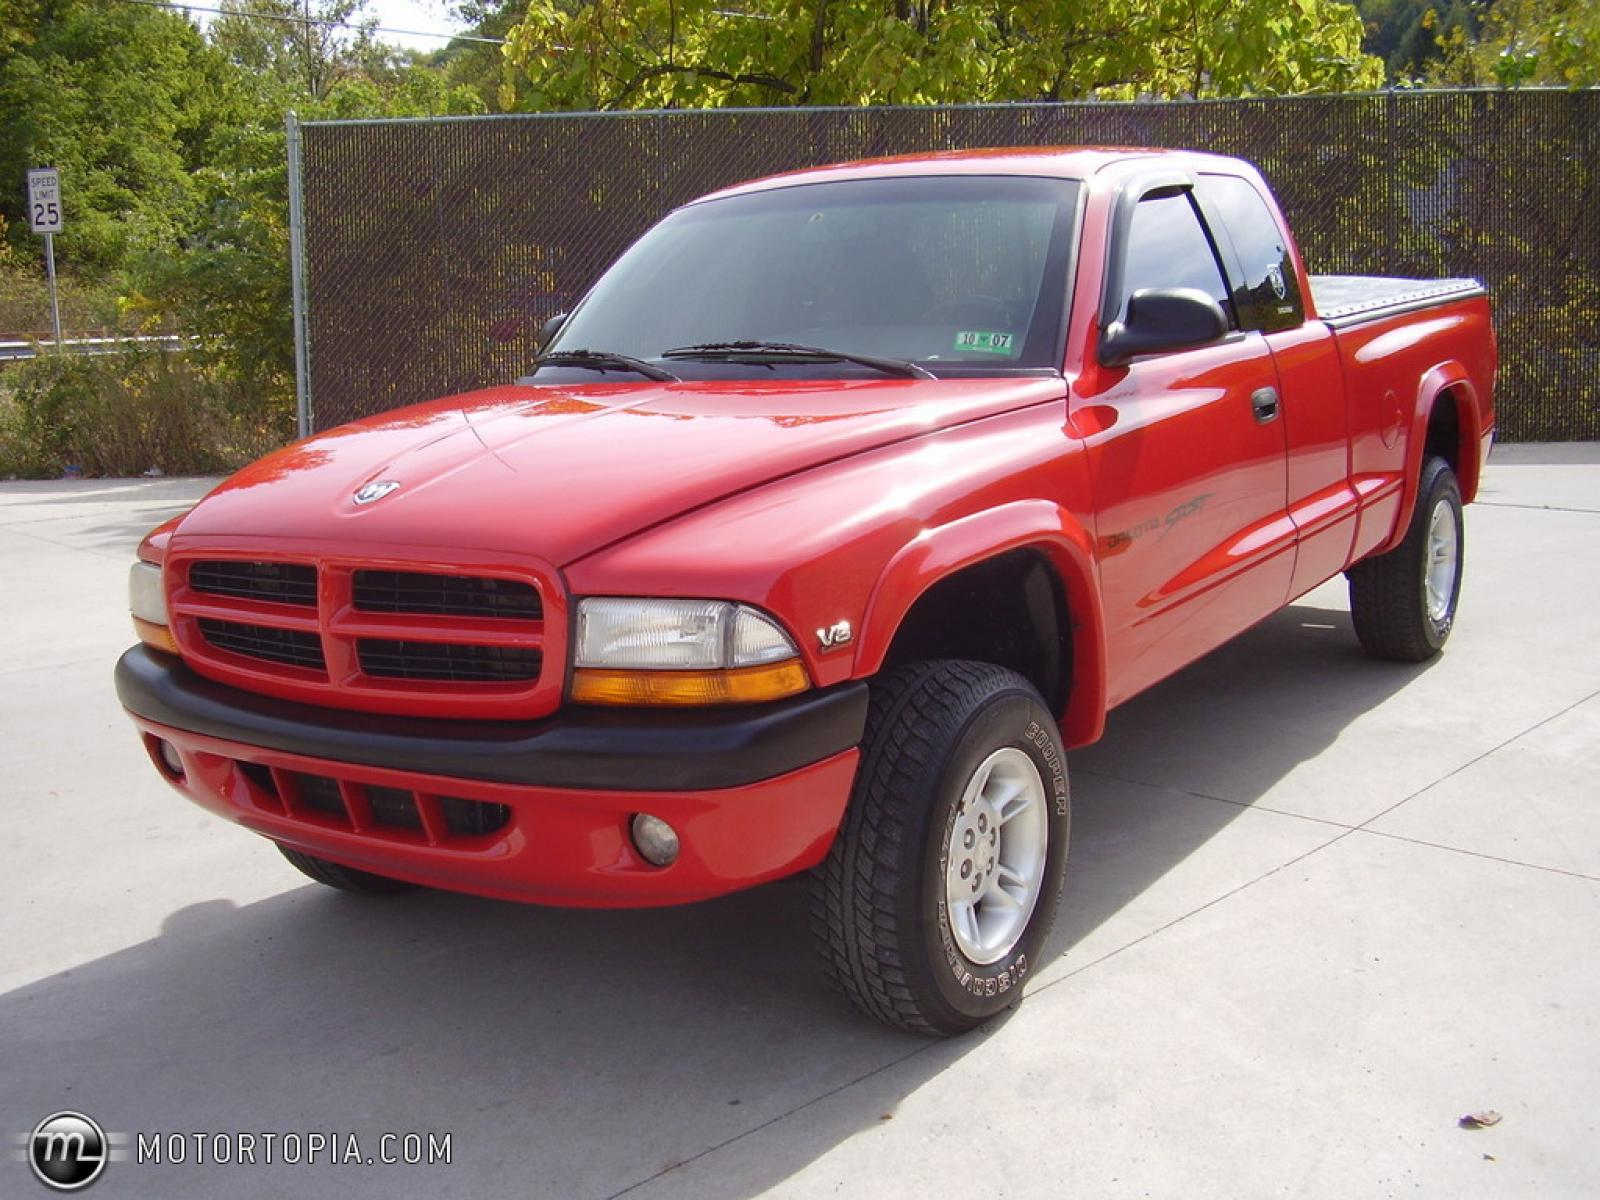 1998 dodge dakota information and photos zombiedrive 2000 Dodge Ram 800 1024 1280 1600 origin 1998 dodge dakota